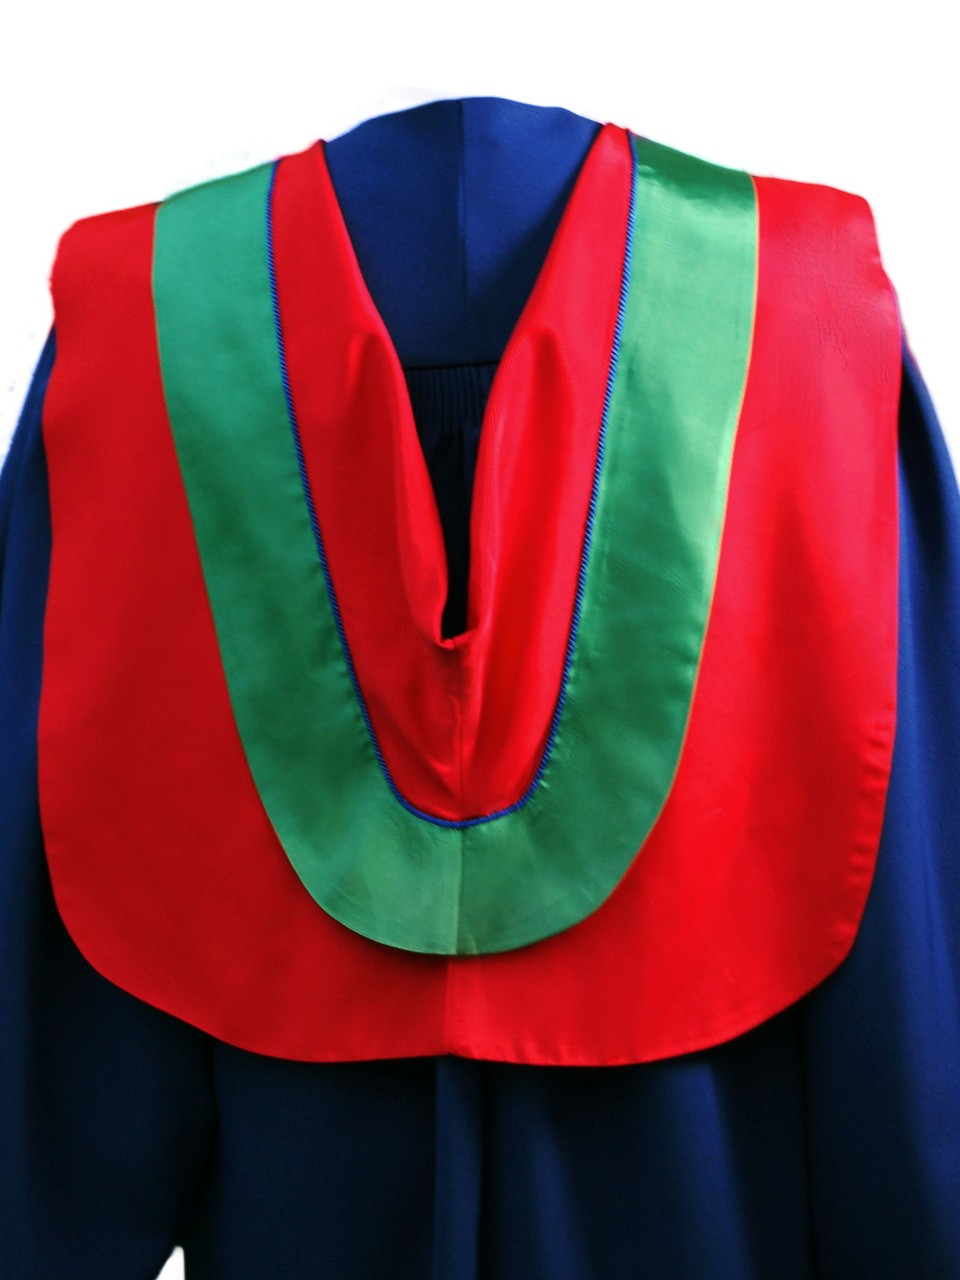 The Master of Arts in the Faculty of Communication, Art and Technology hood is red with wide green border, royal blue cording